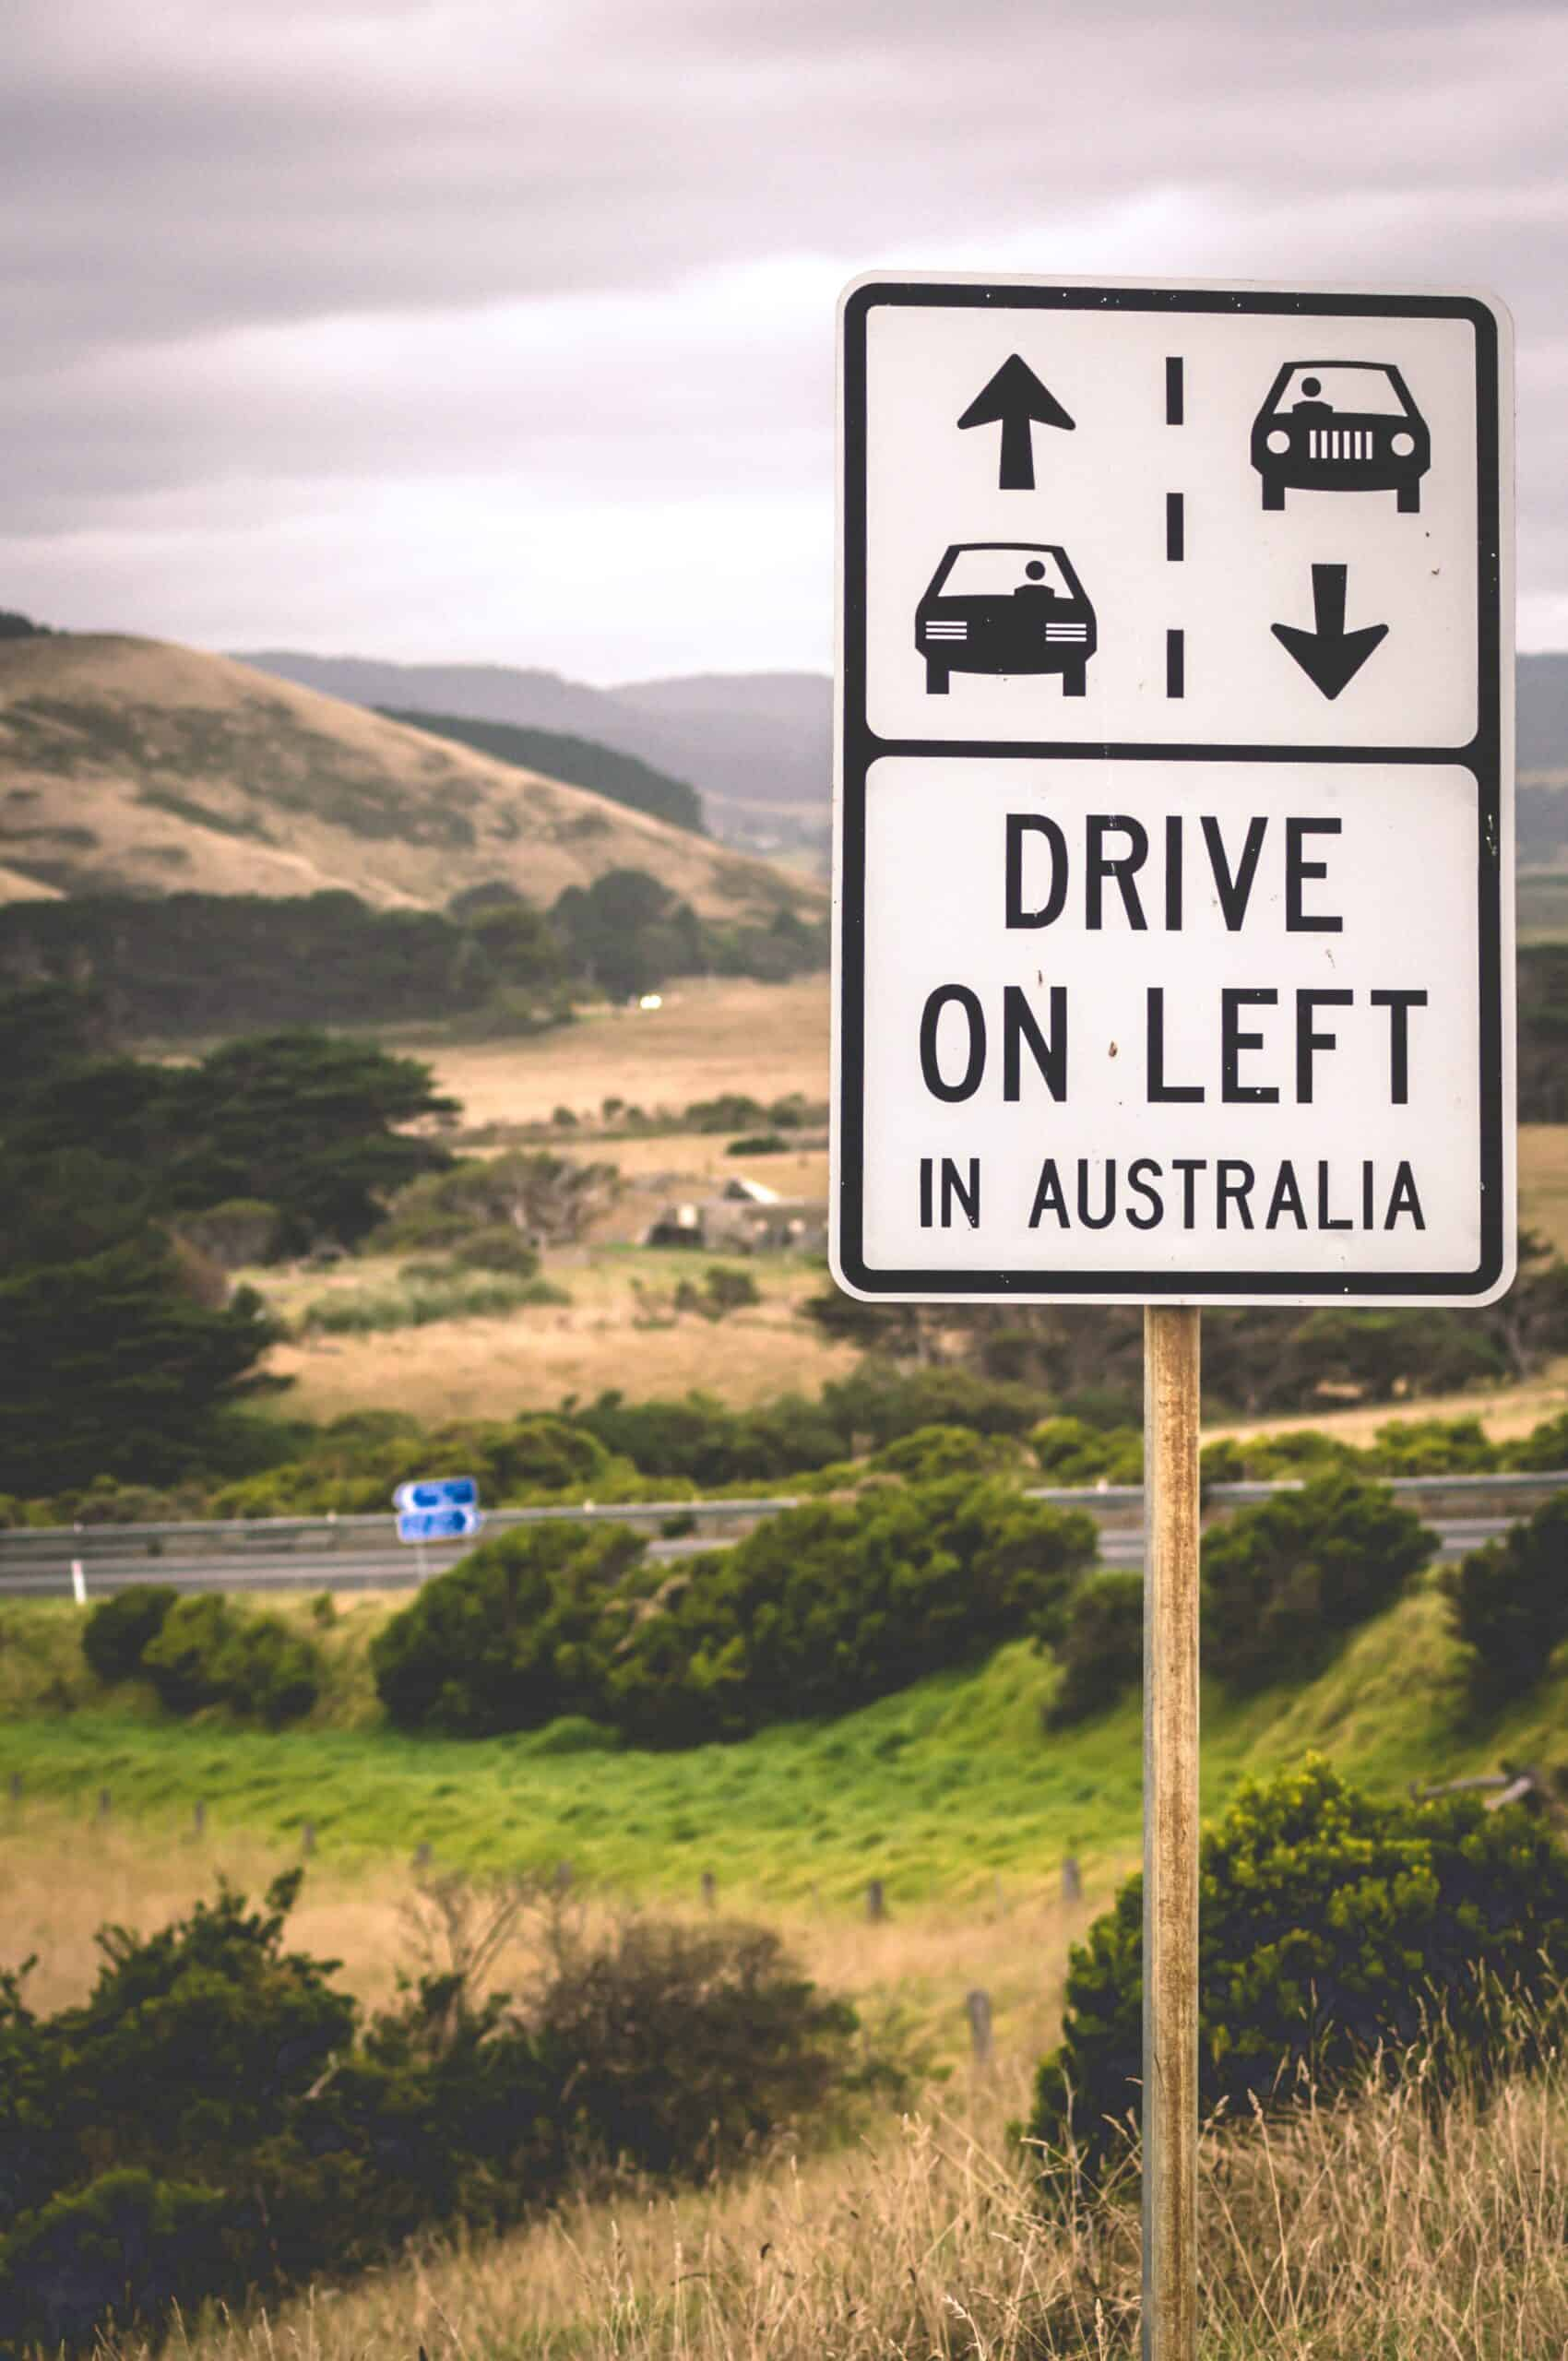 A road sign sowing to Drive on the left in Australia.